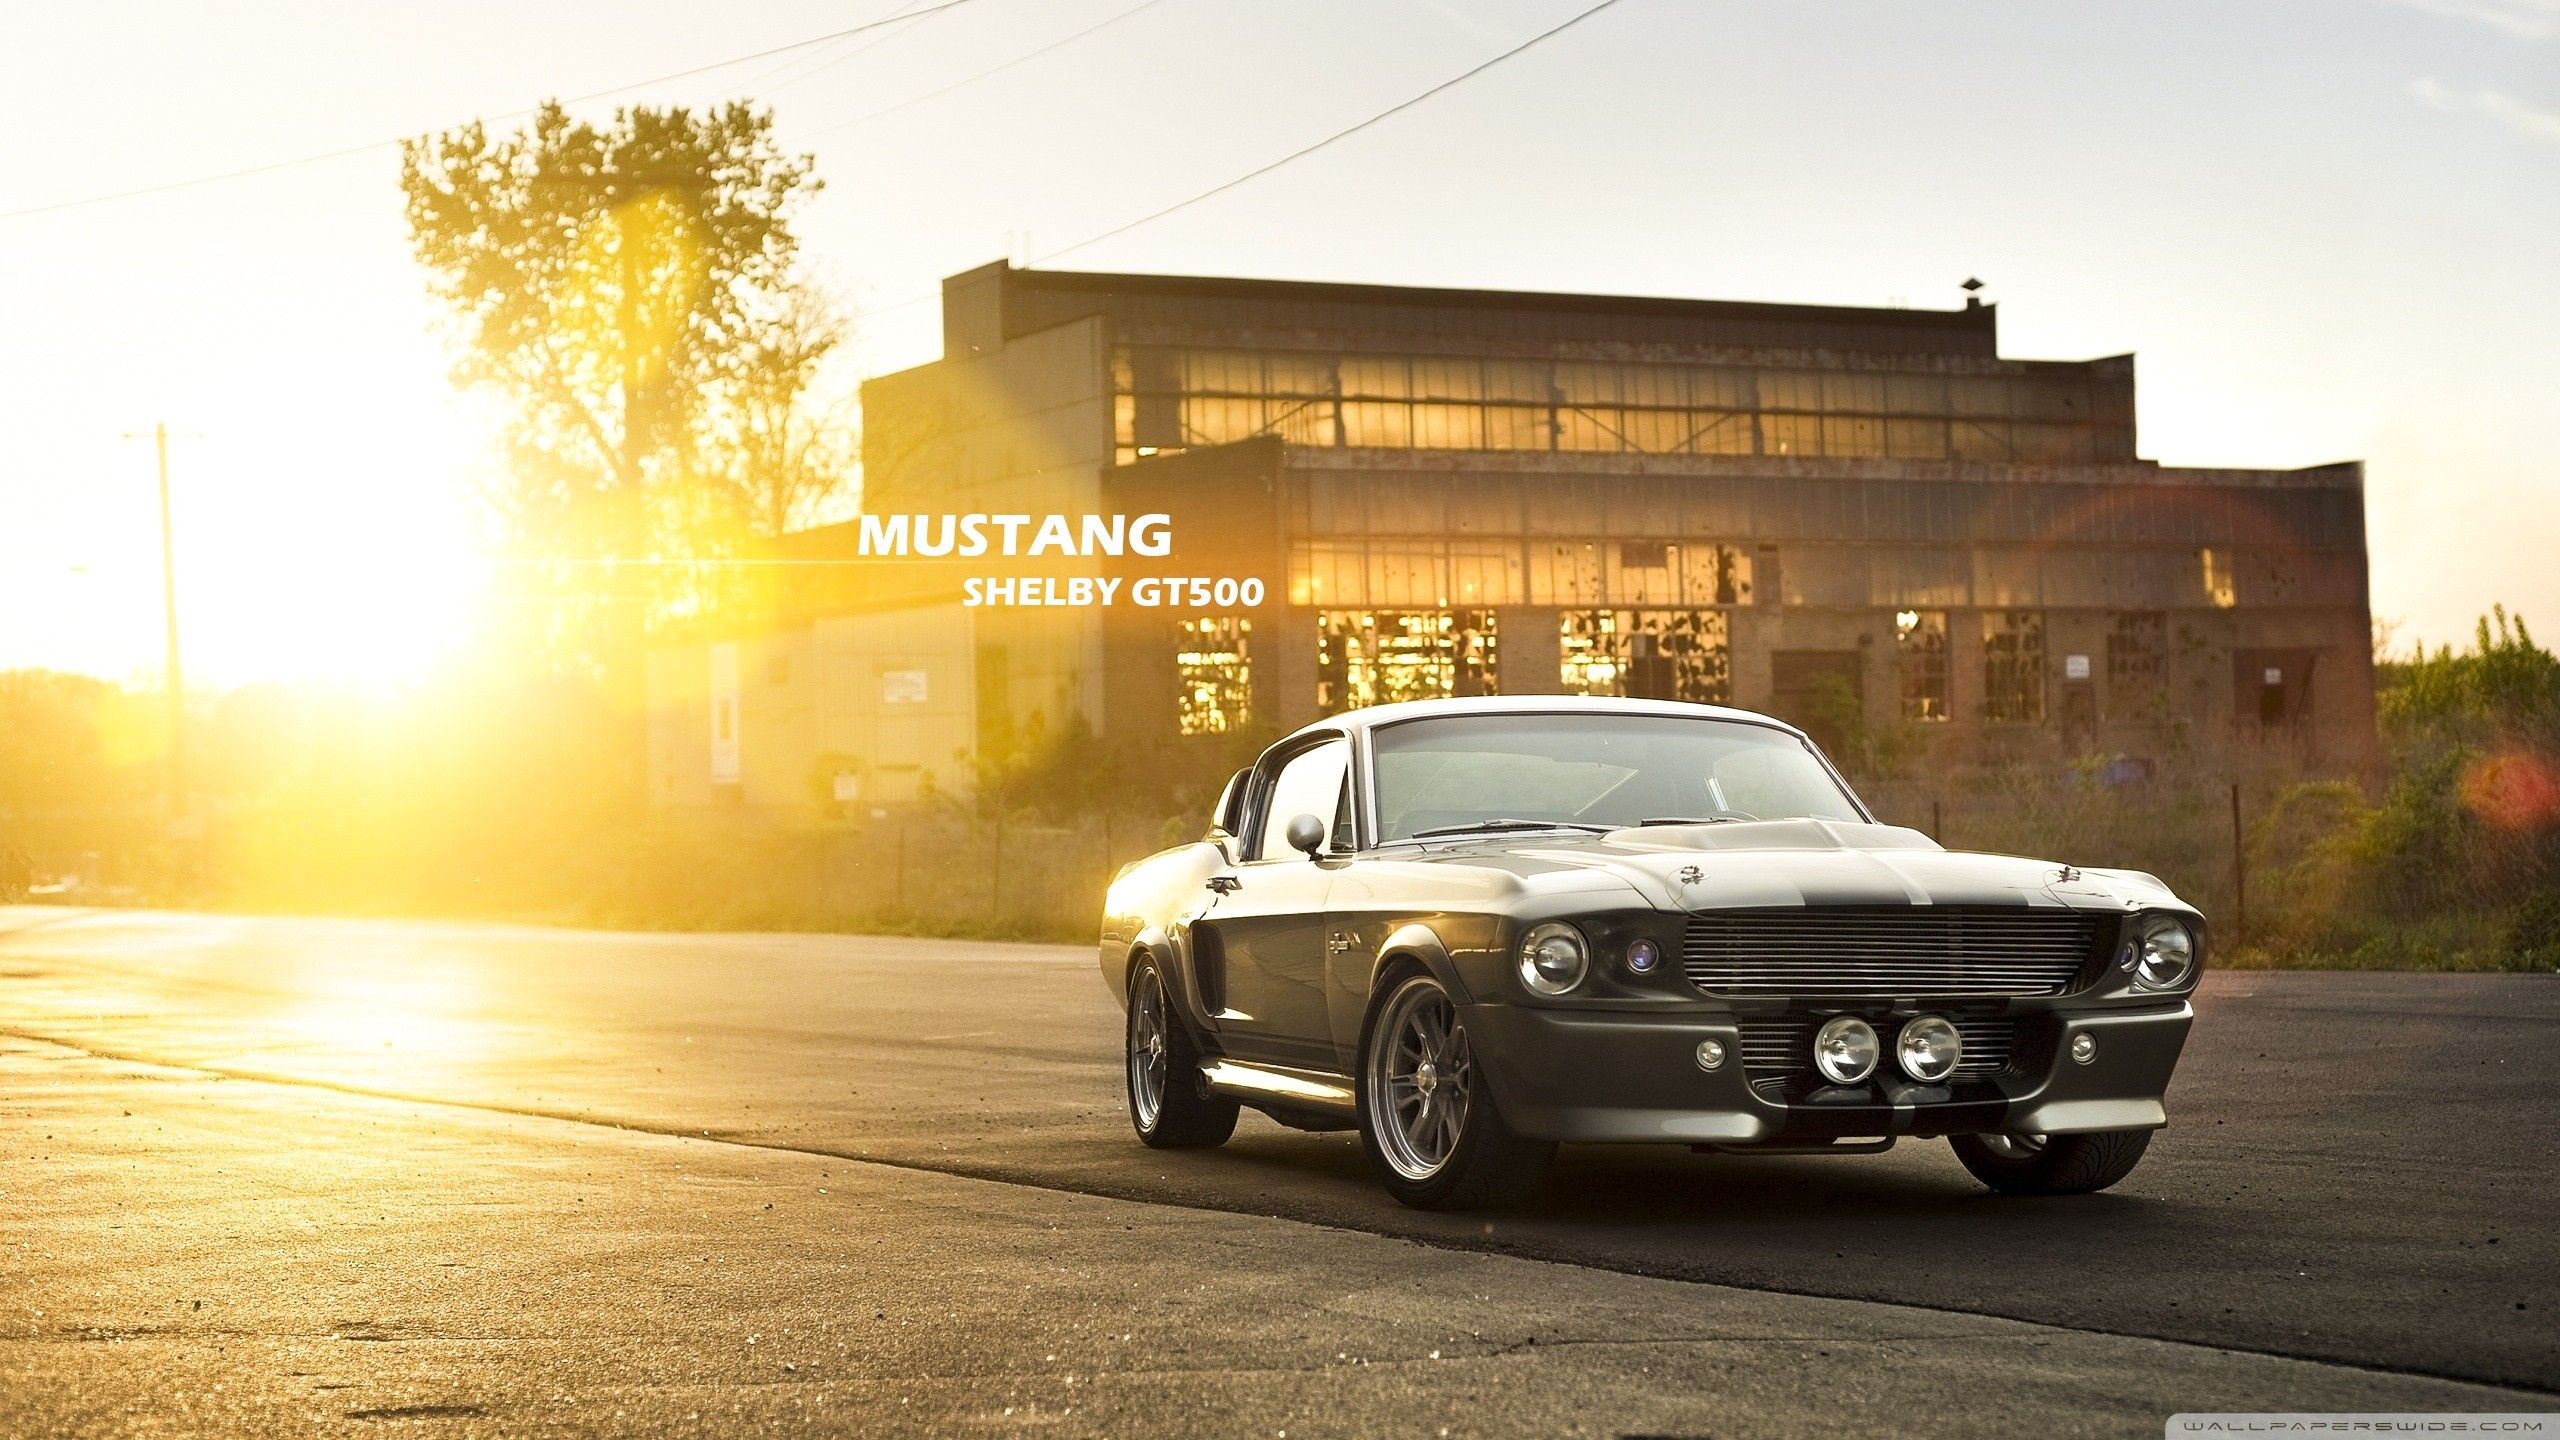 Mustang Shelby GT500 HD Wide Wallpaper for Widescreen